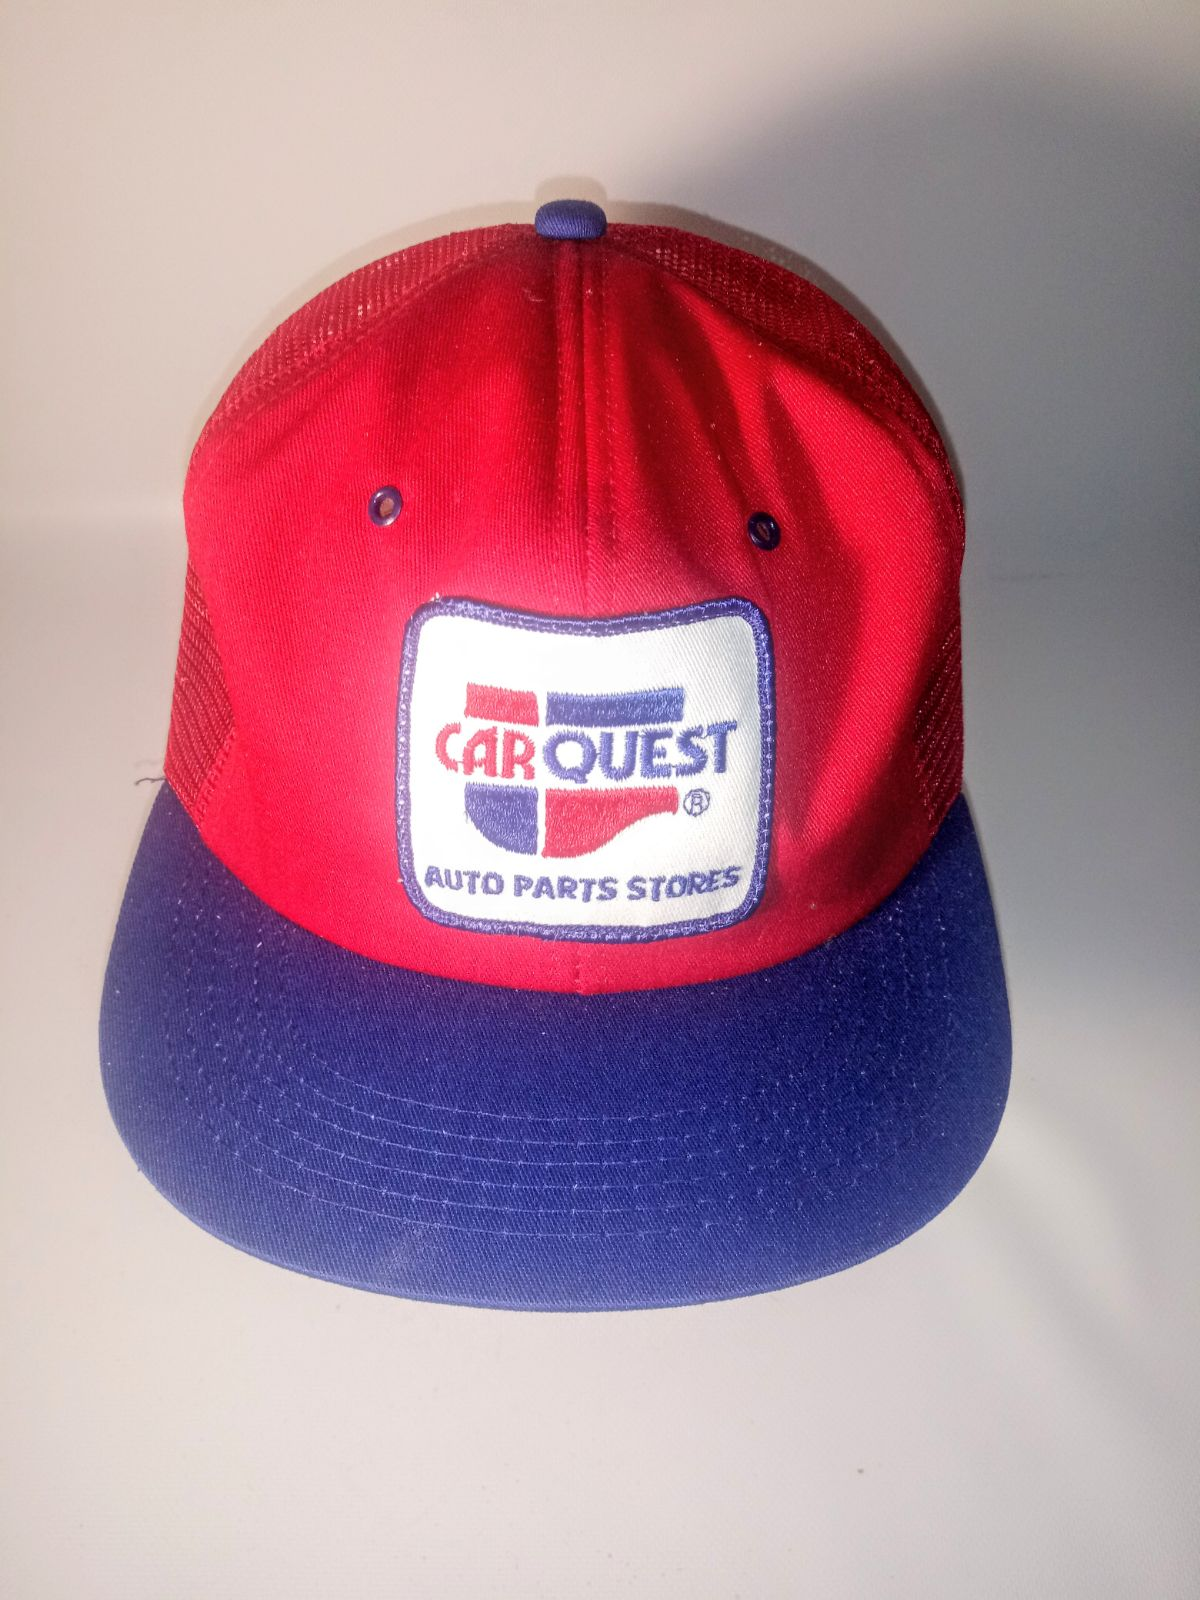 Car Quest Auto Parts K-Products Hat